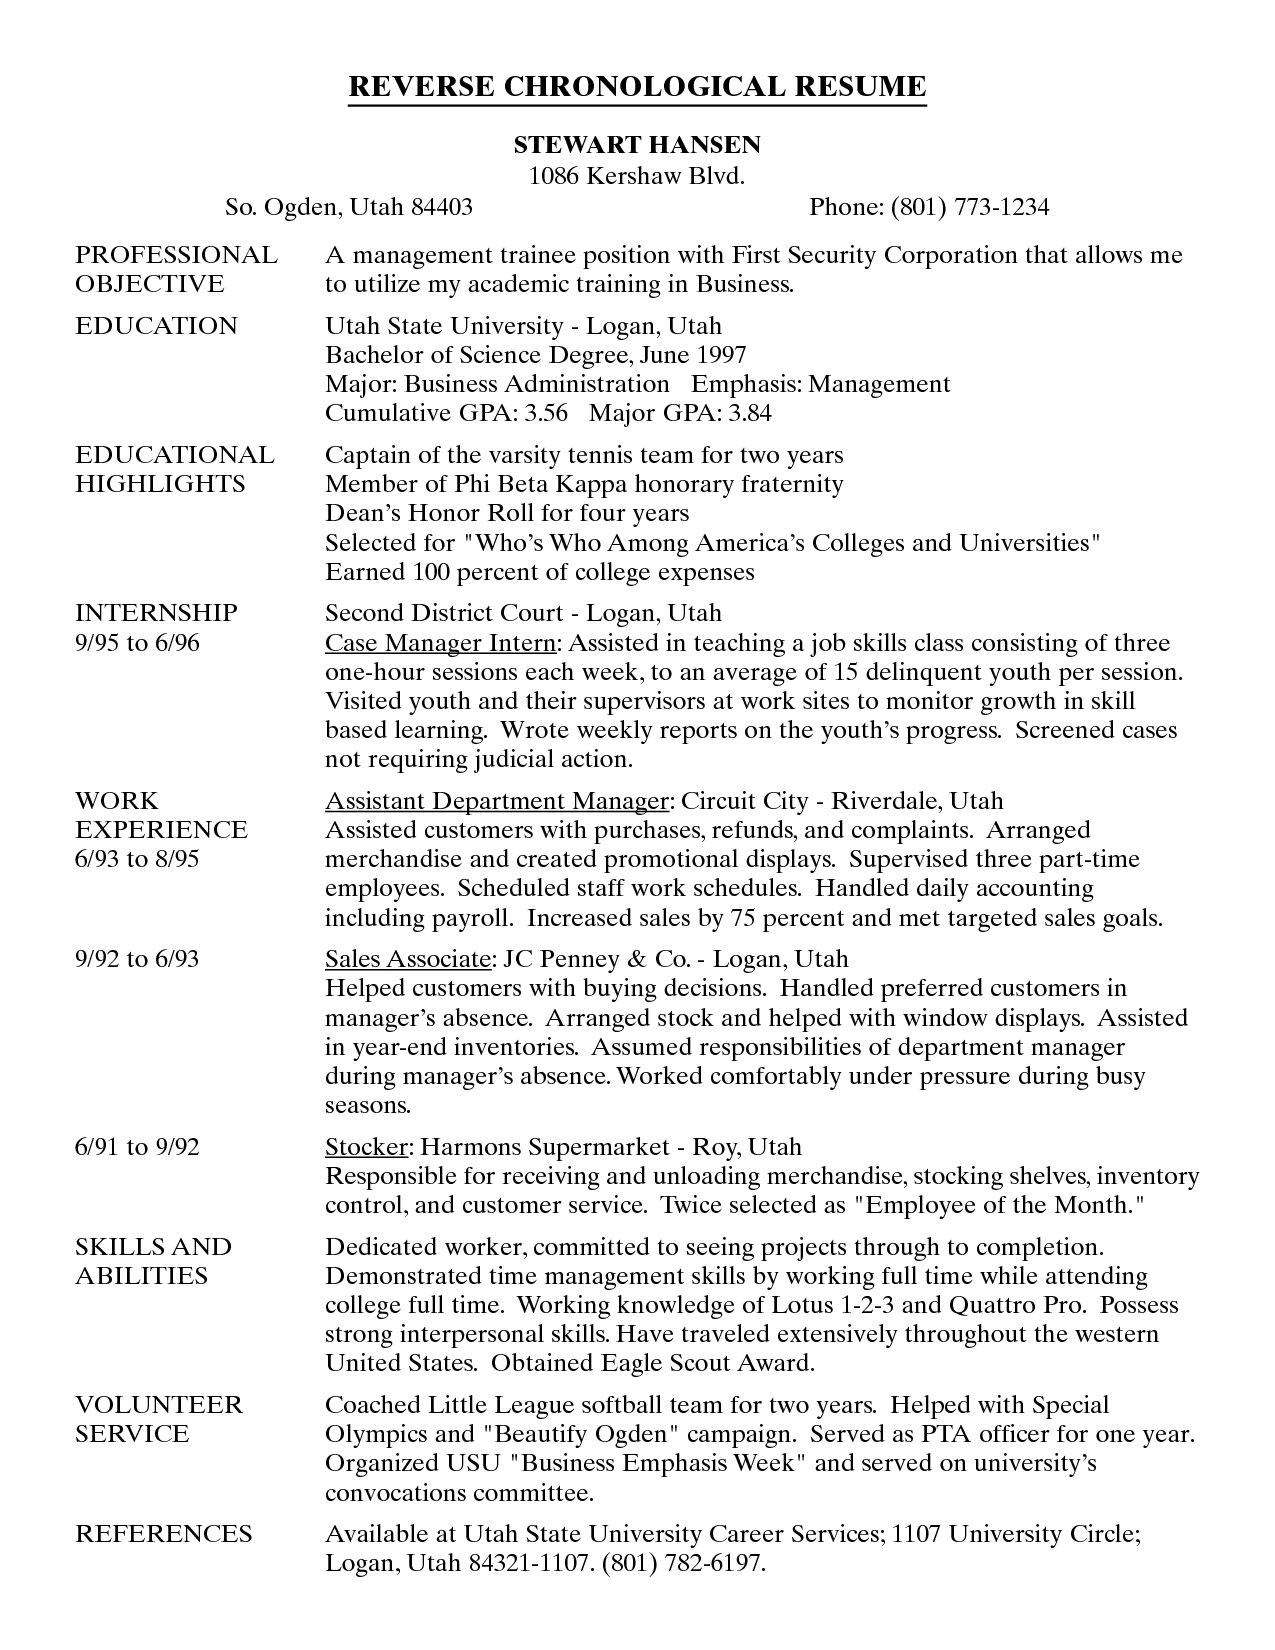 Chronological Order Resume Example Dc0364f86 The Reverse Chronological  Resume Example  Chronological Resume Sample